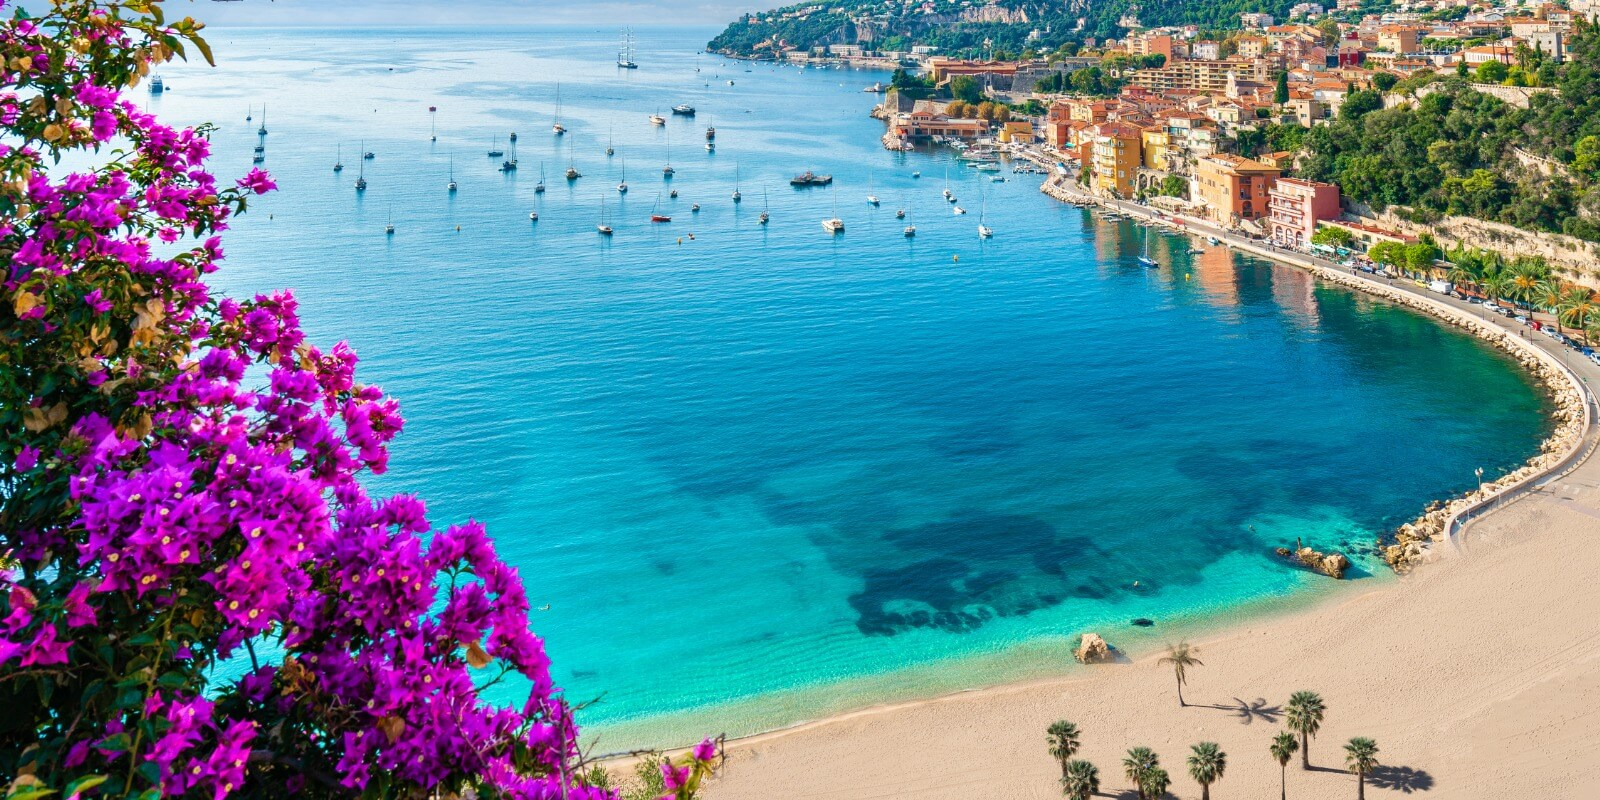 Coastal View of The French Riviera